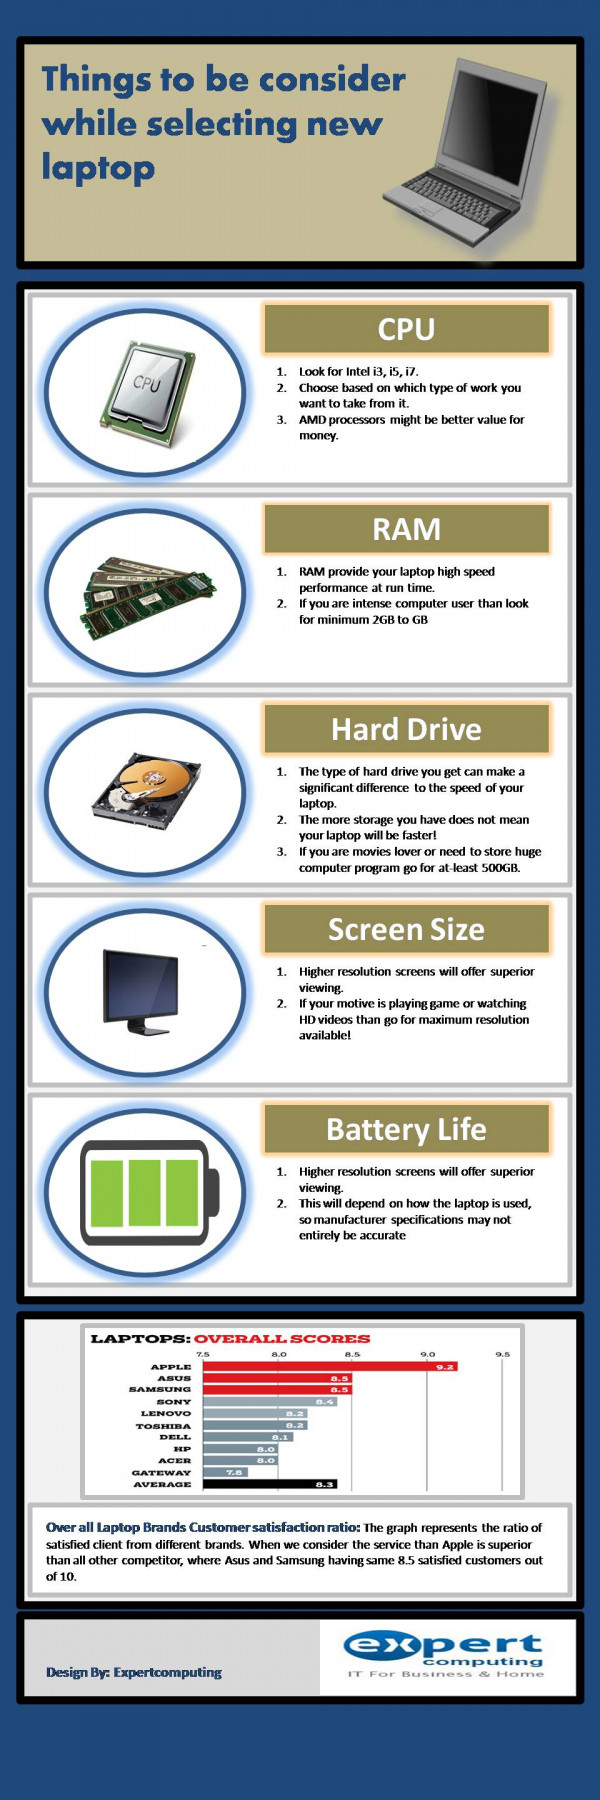 Things to be consider while selecting new laptop